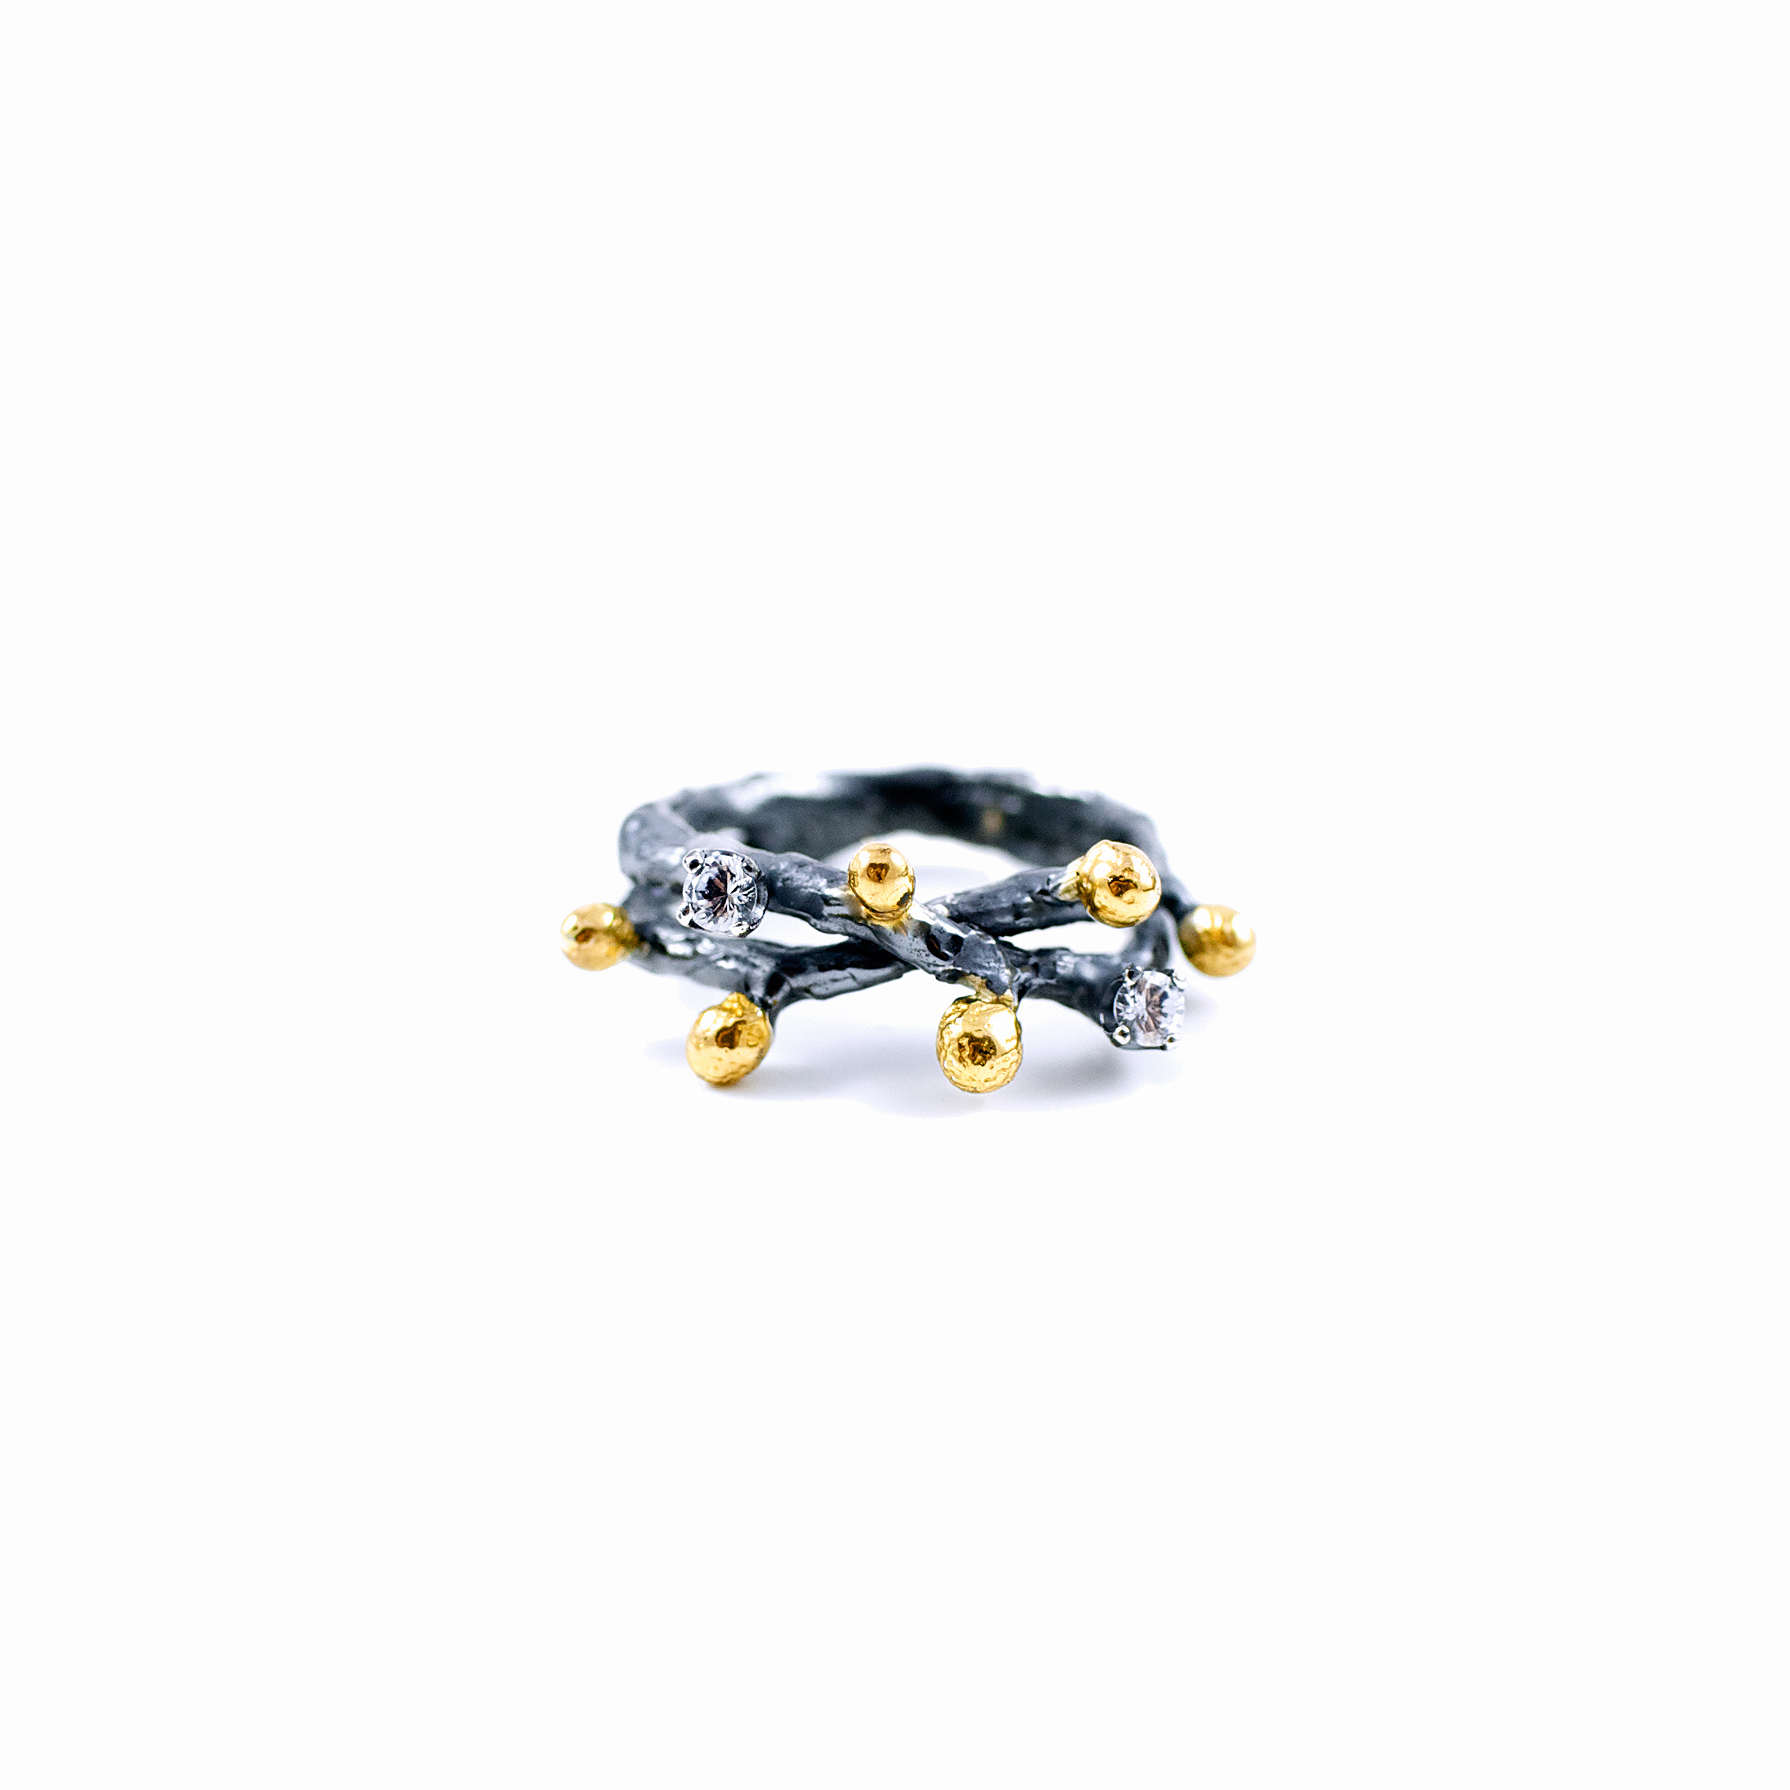 Efflorescence Ring | Sterling silver, white sapphires, gold vermeil, patina.